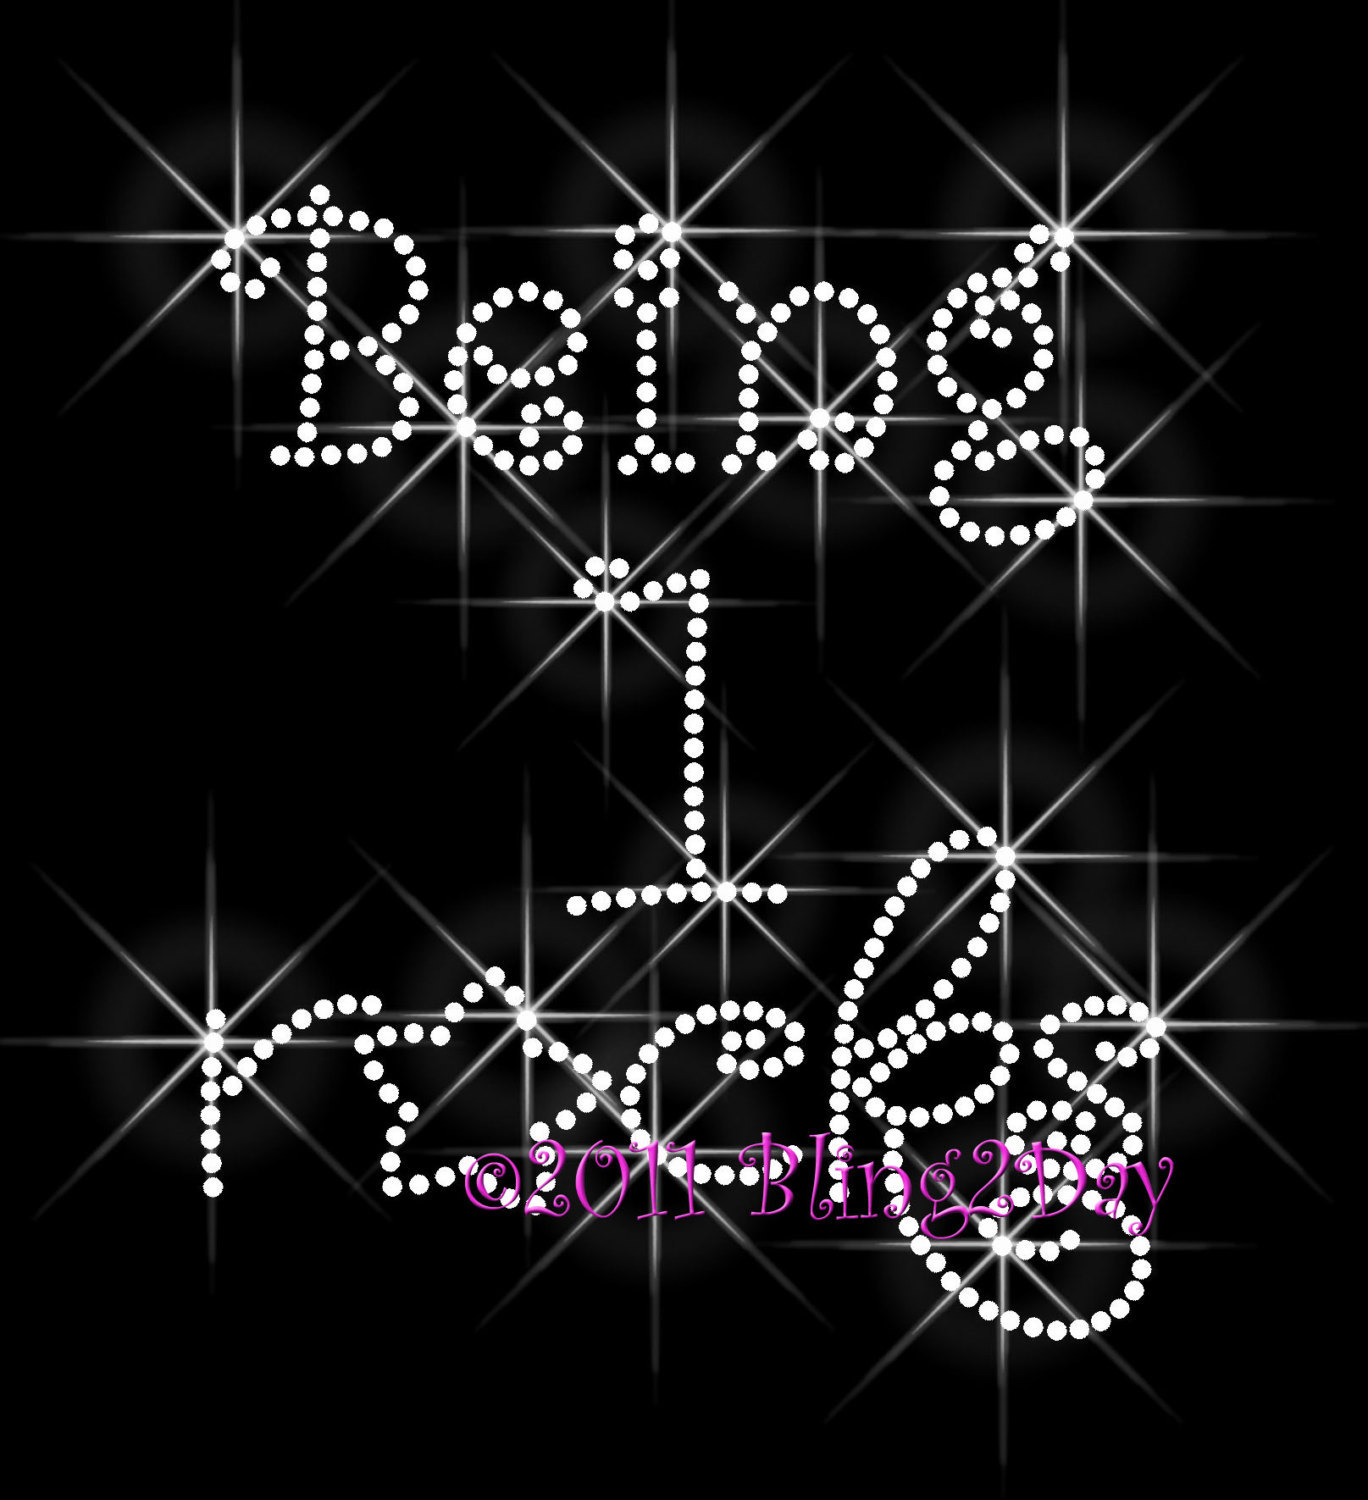 Primary image for Being 1 Rocks - With Star - Iron on Rhinestone Transfer - Bling Hot Fix One -DIY